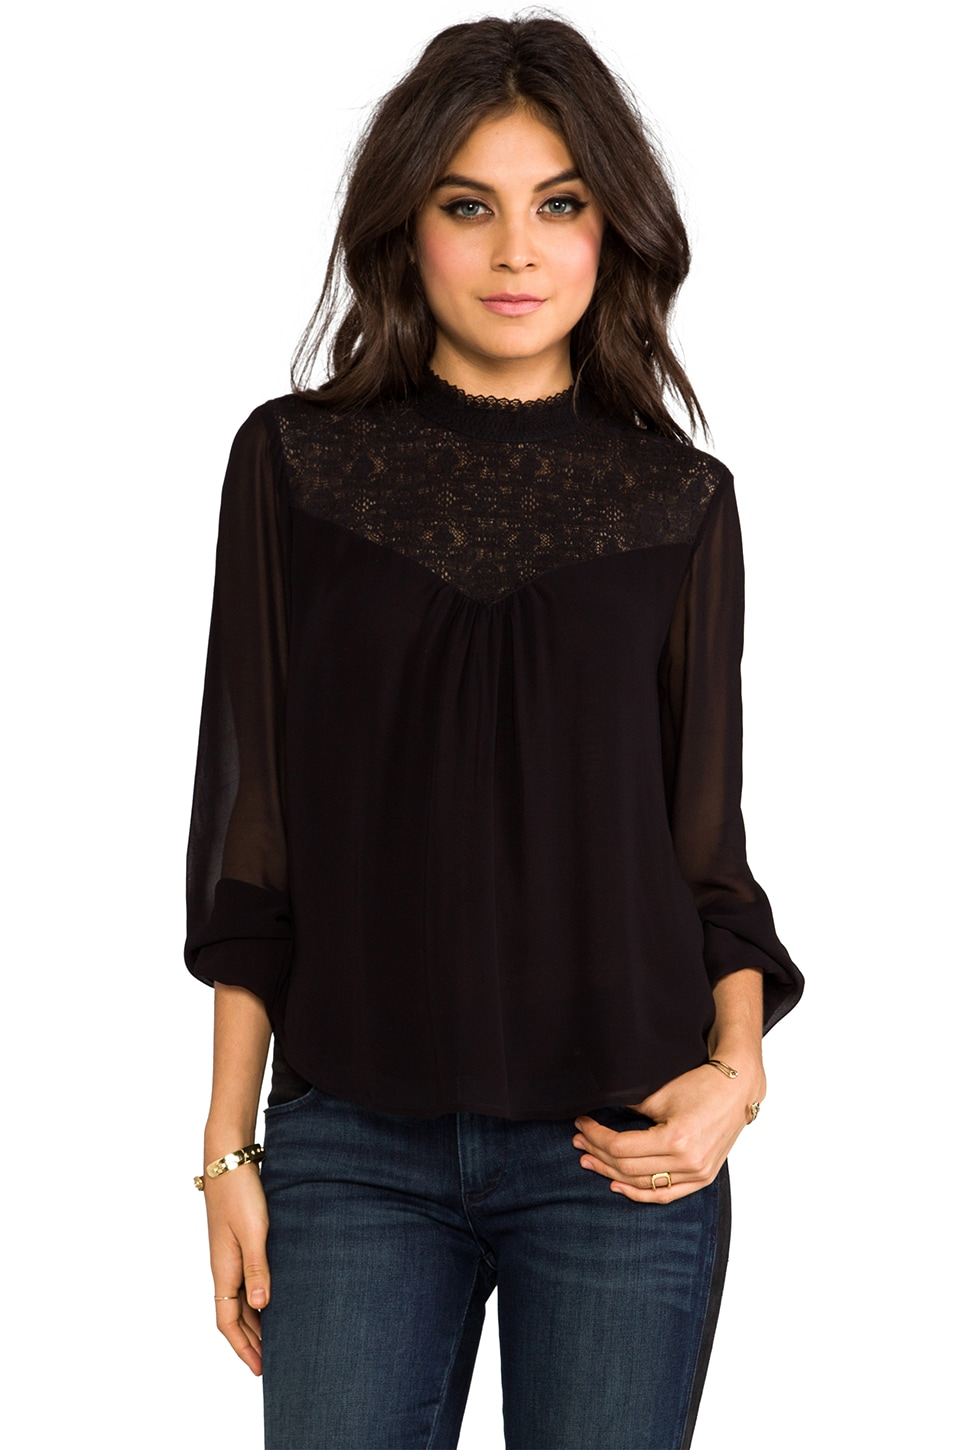 Velvet by Graham & Spencer Jaleesa Chiffon Top in Black